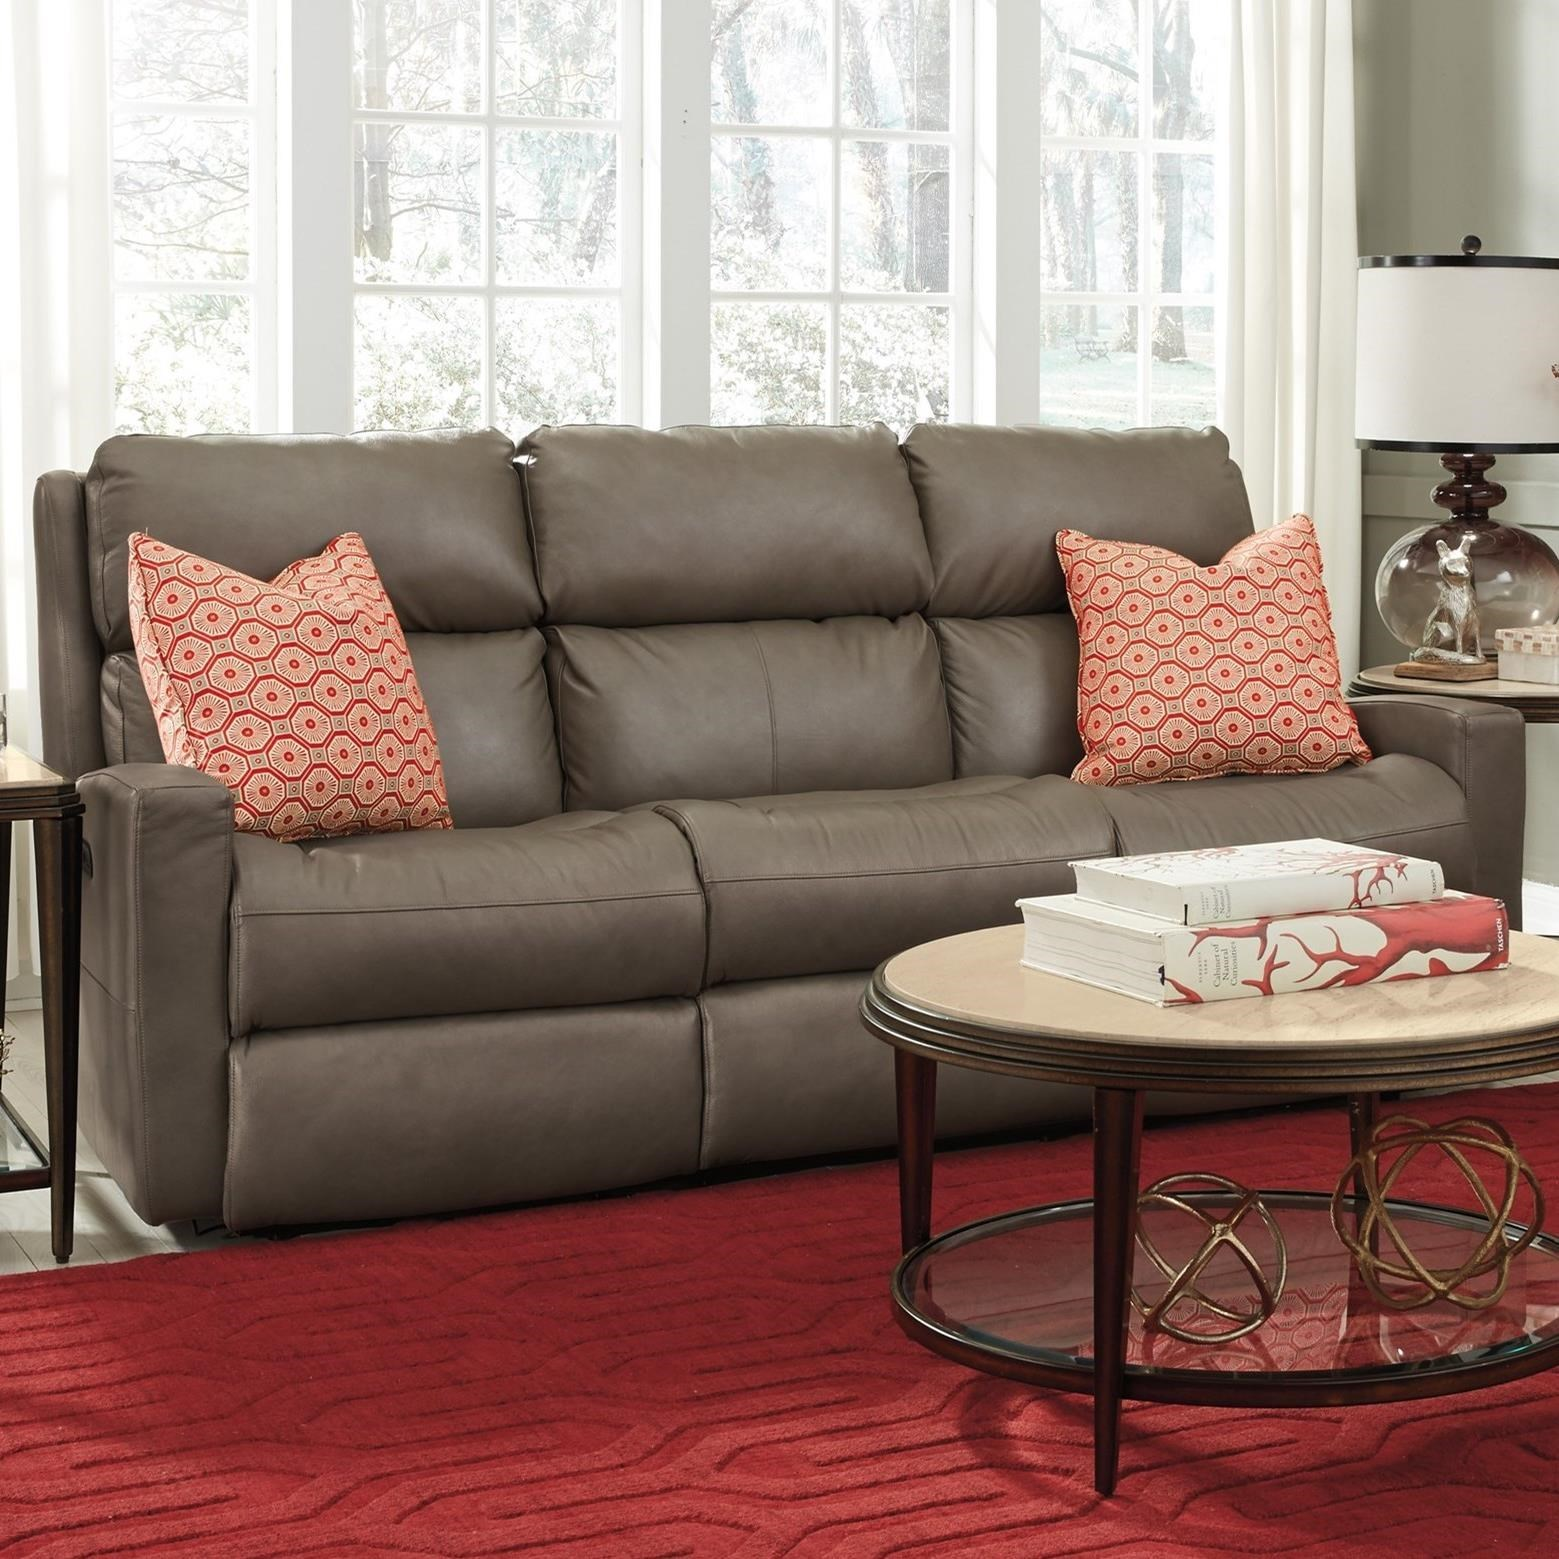 Flexsteel Catalina Contemporary Casual Power Reclining Sofa with Power Headrests : flexsteel leather power reclining sofa - islam-shia.org